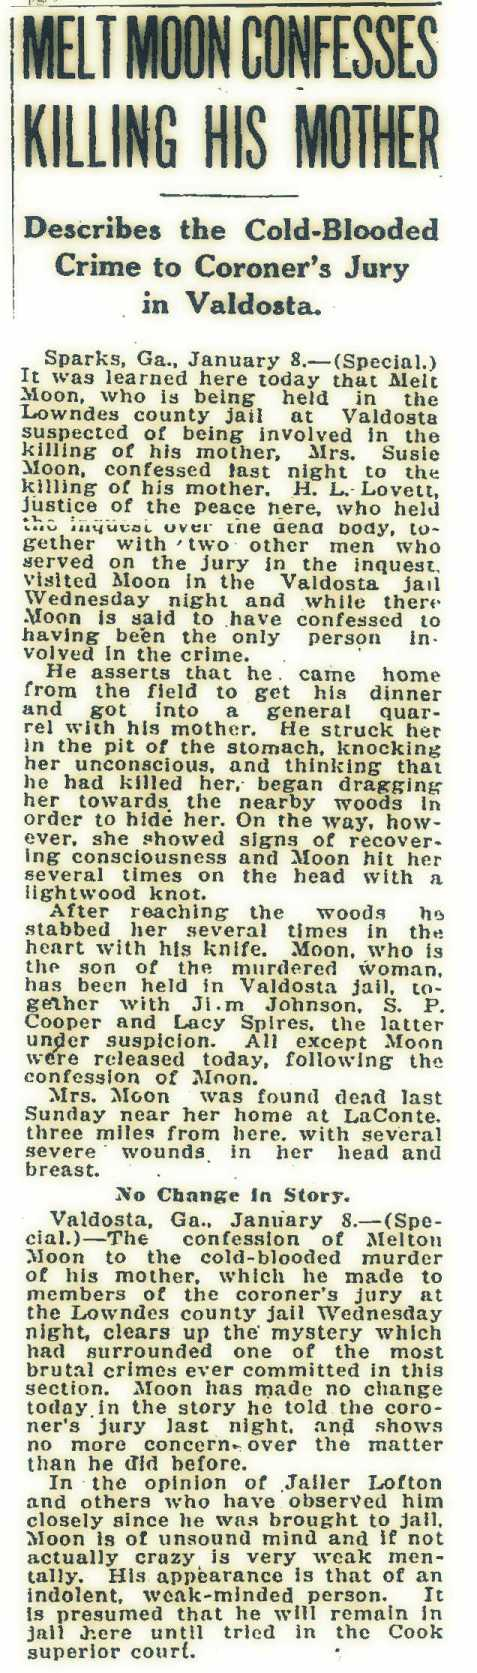 Melton Moon Confesses, Jan 9, 1920, Atlanta Constitution